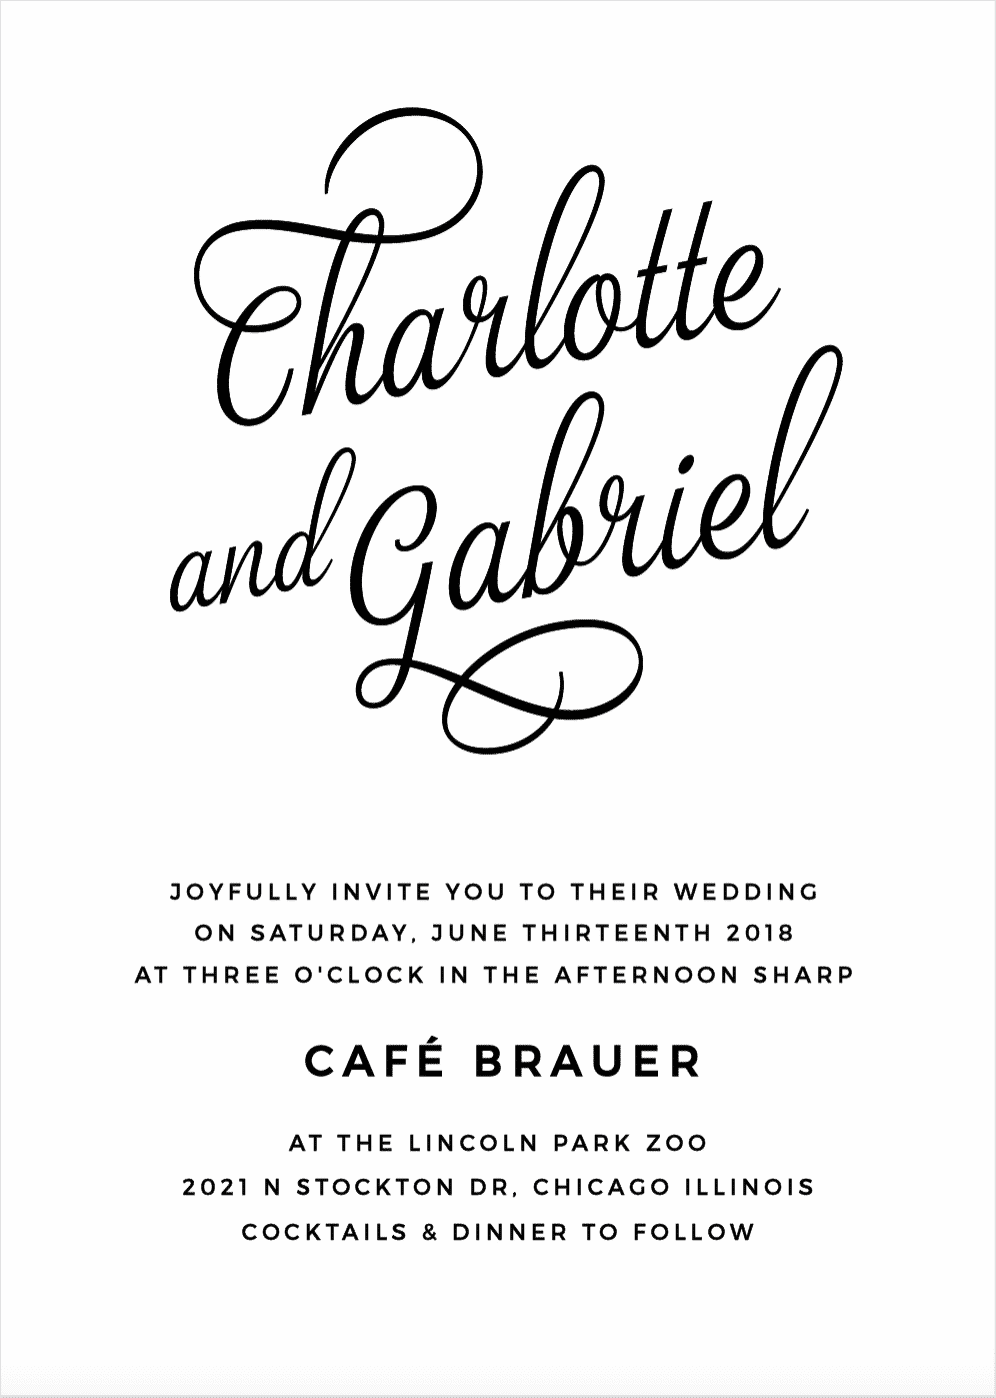 Script Emblem Wedding Invitations